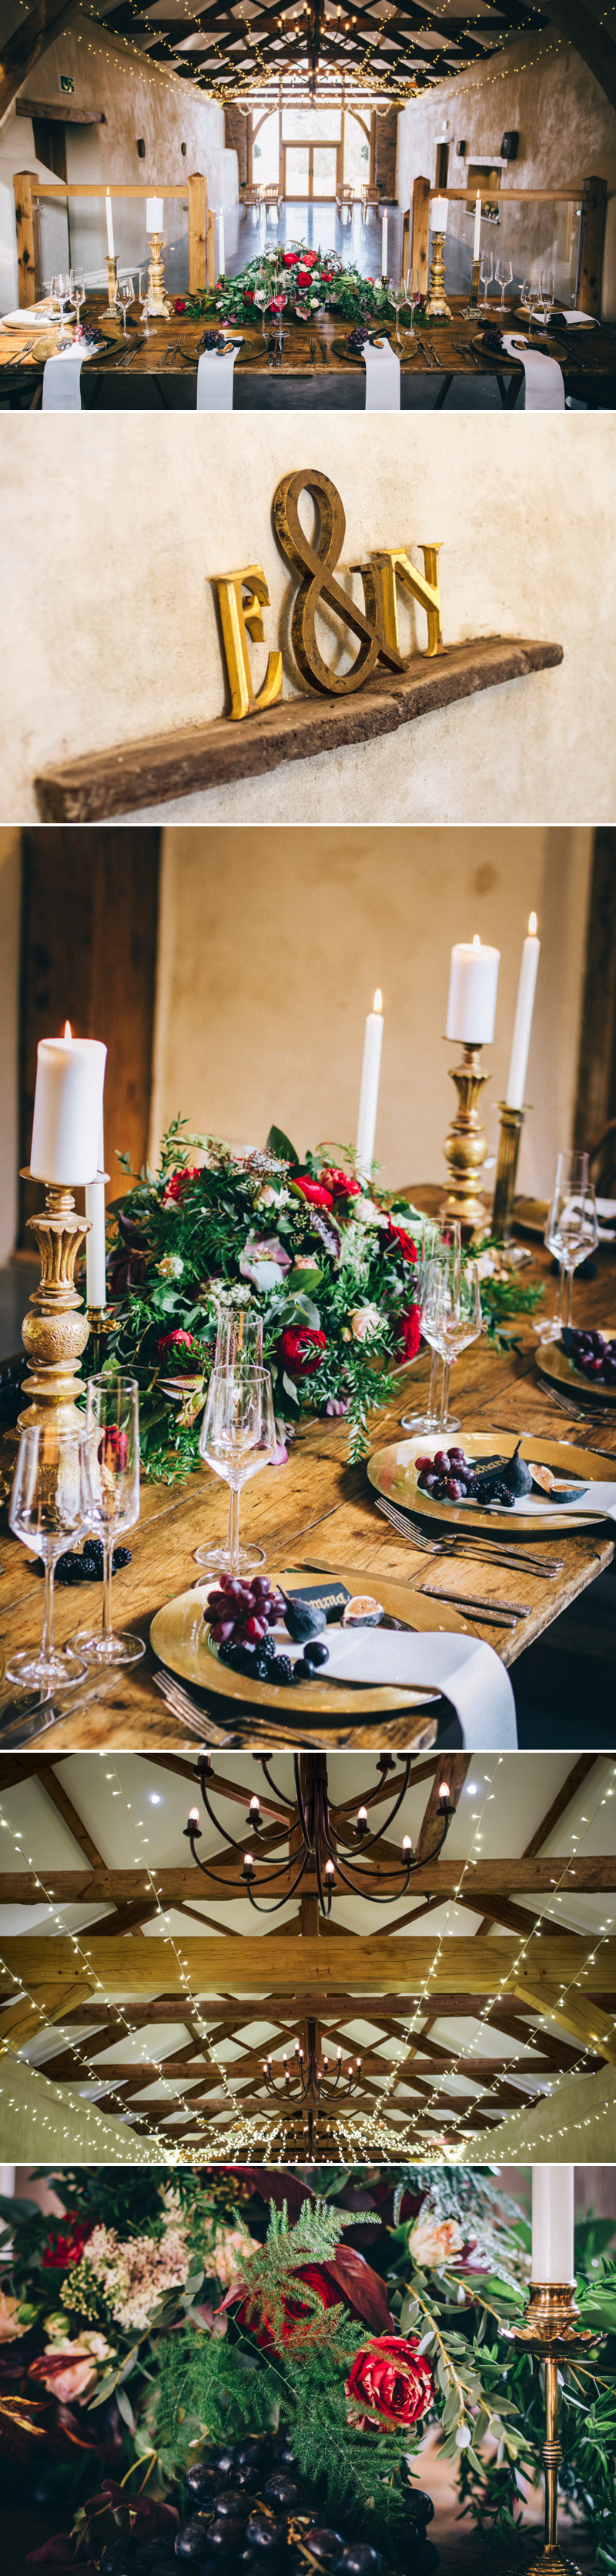 wedding-venues-in-devon-uk-wedding-venue-directory-upton-barn-and-walled-garden-marsala-inspired-styled-shoot-coco-wedding-venues-001